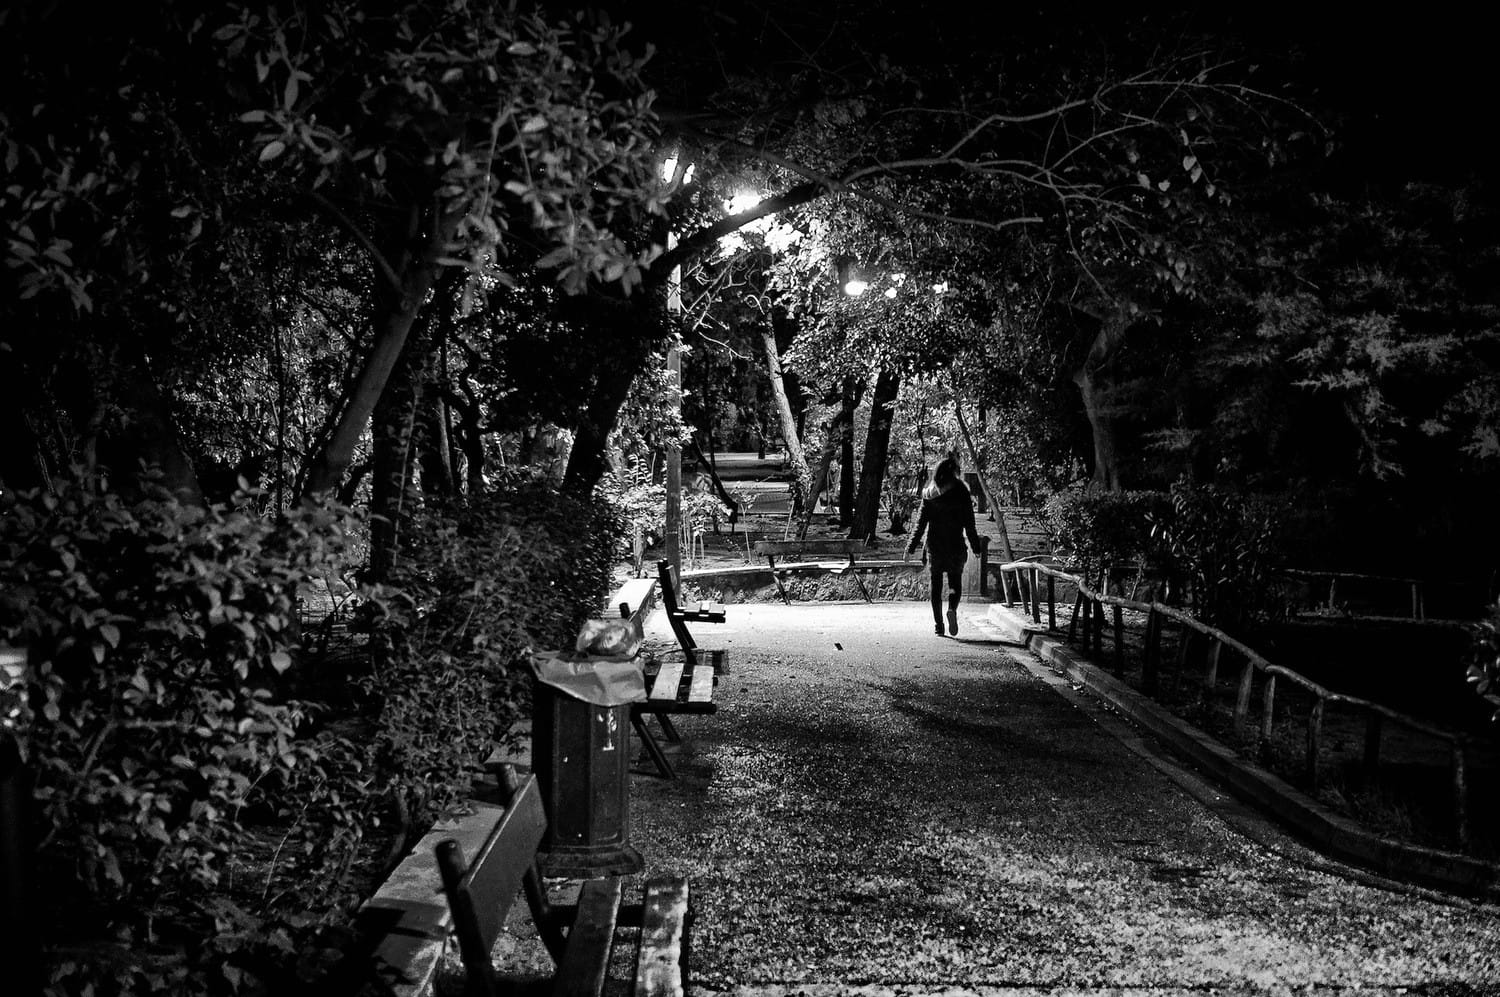 athens-lonely-walk-in-the-park